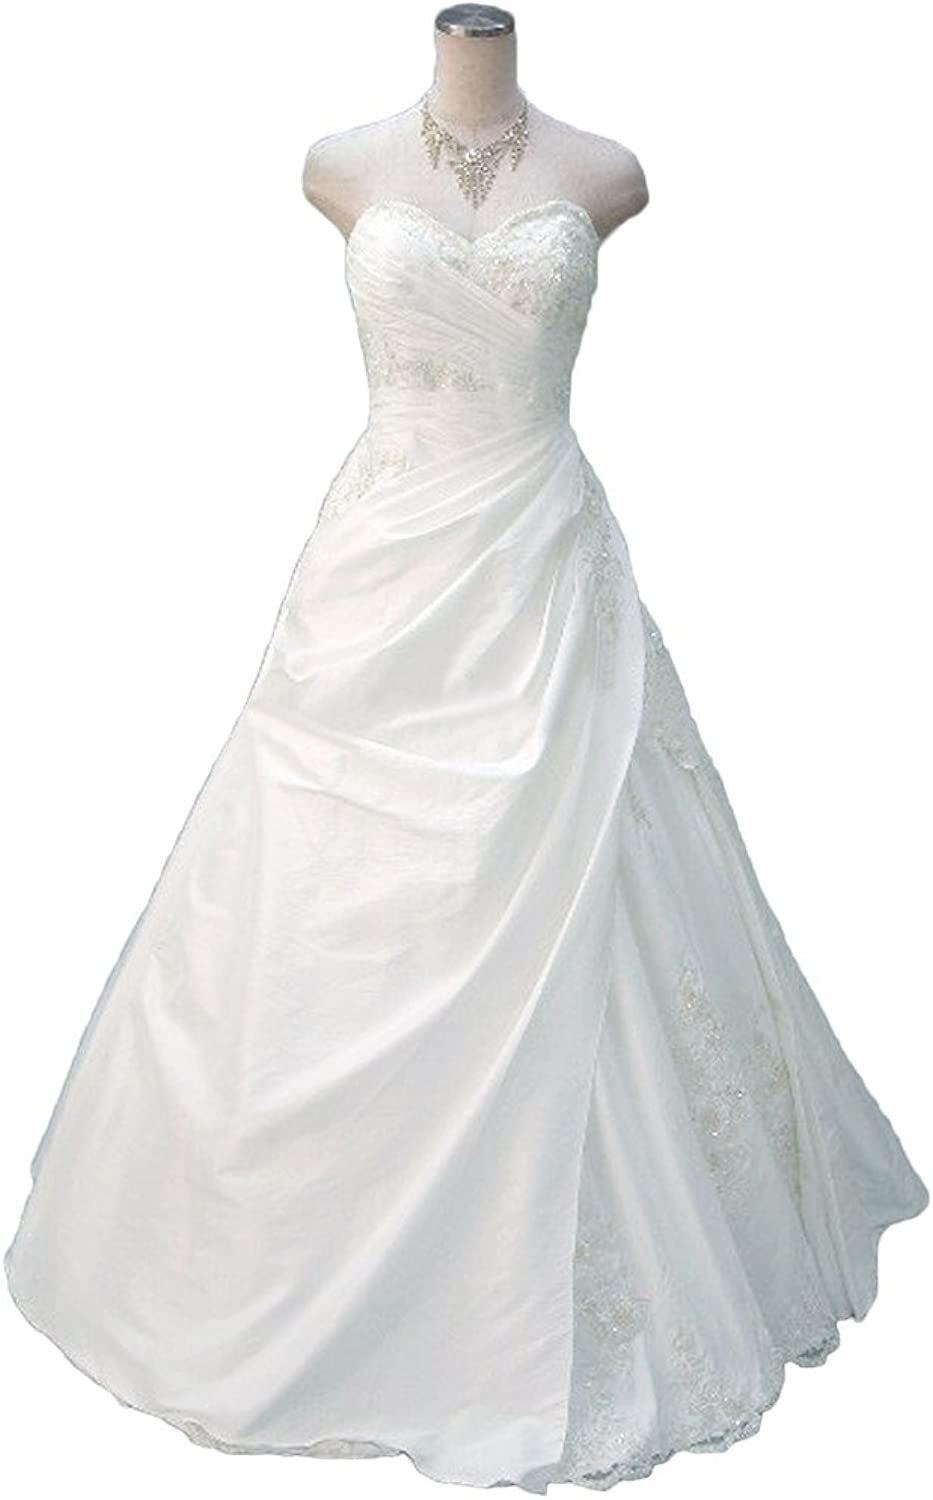 Avril Dress Taffeta Strapless Ball Gown Applique Wedding Gown LaceUp